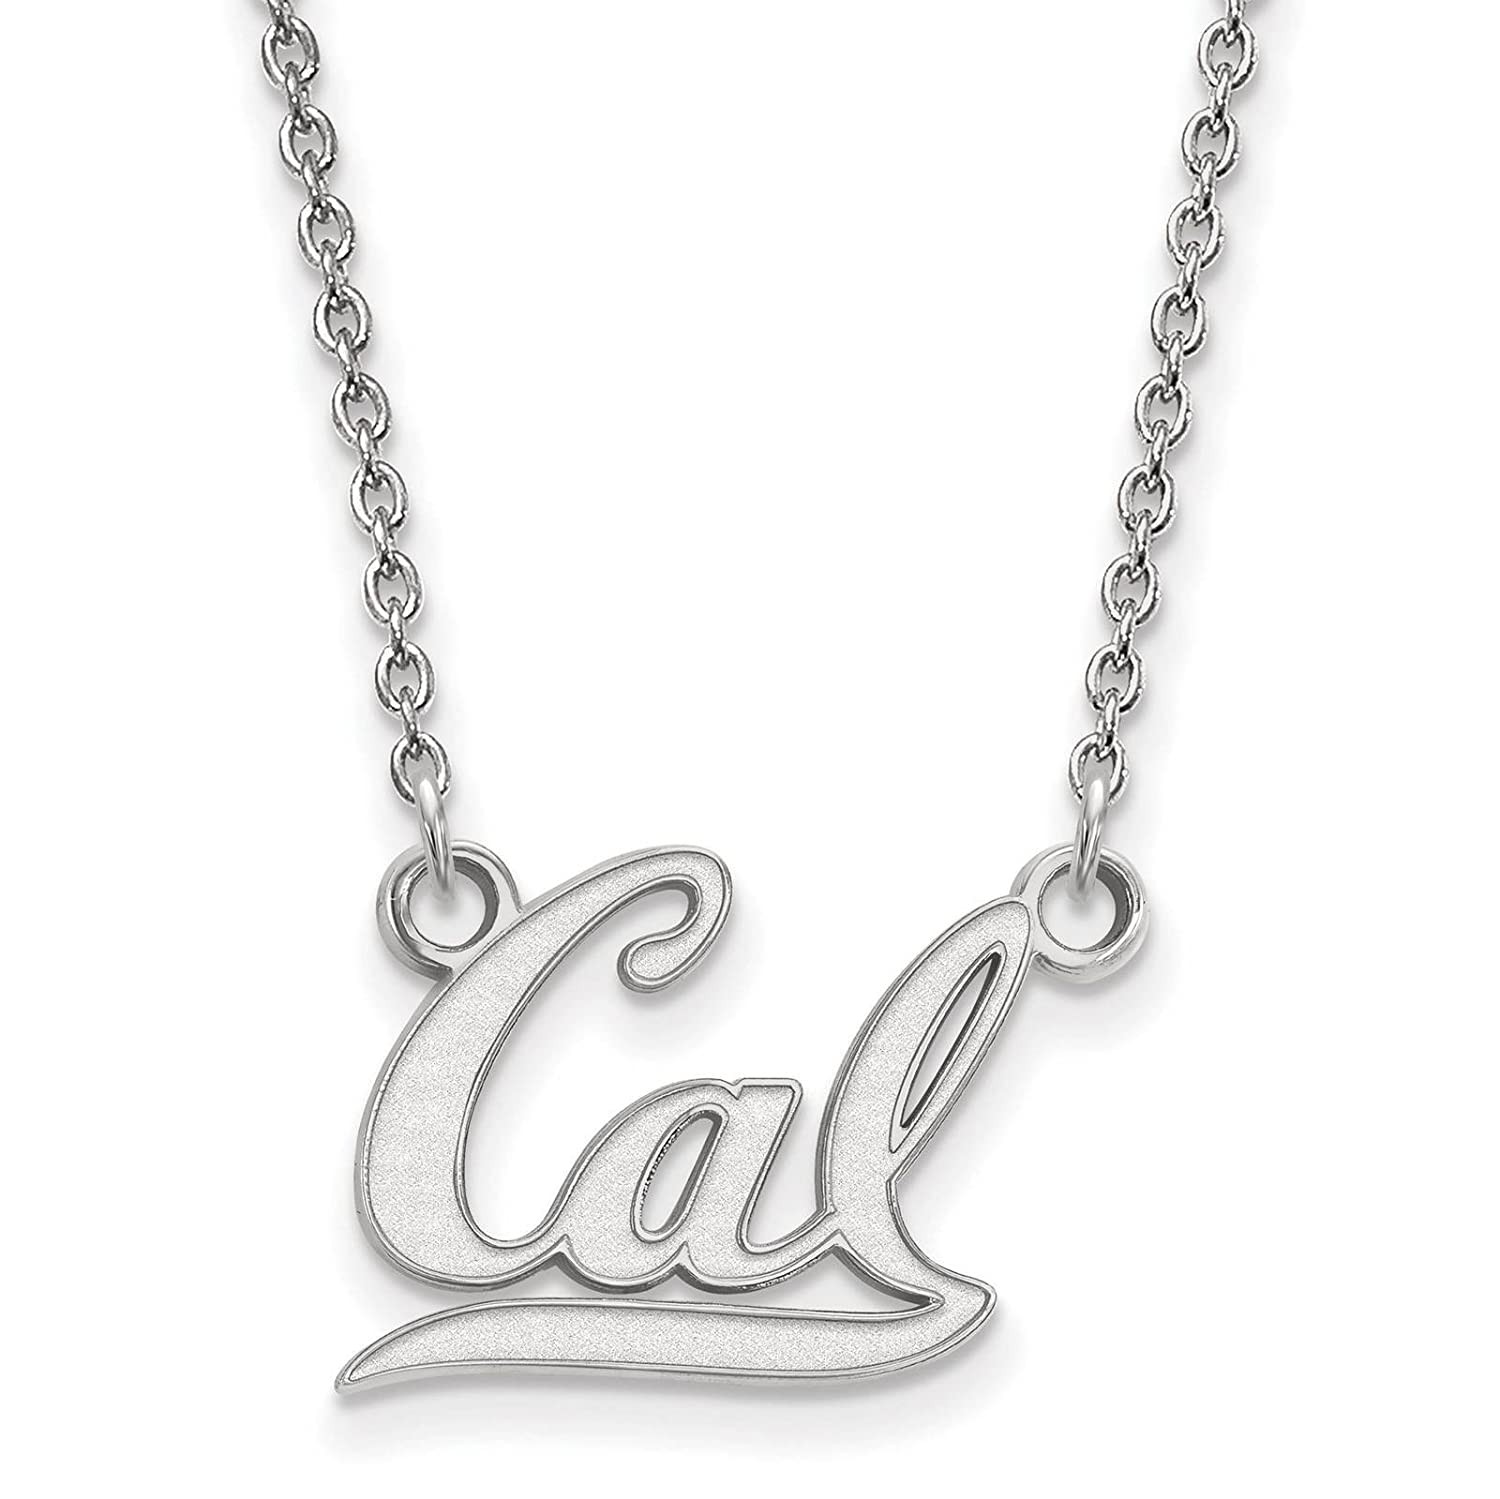 Sterling Silver Rhodium-plated Laser-cut University of California Berkeley Small Pendant w//Necklace 18